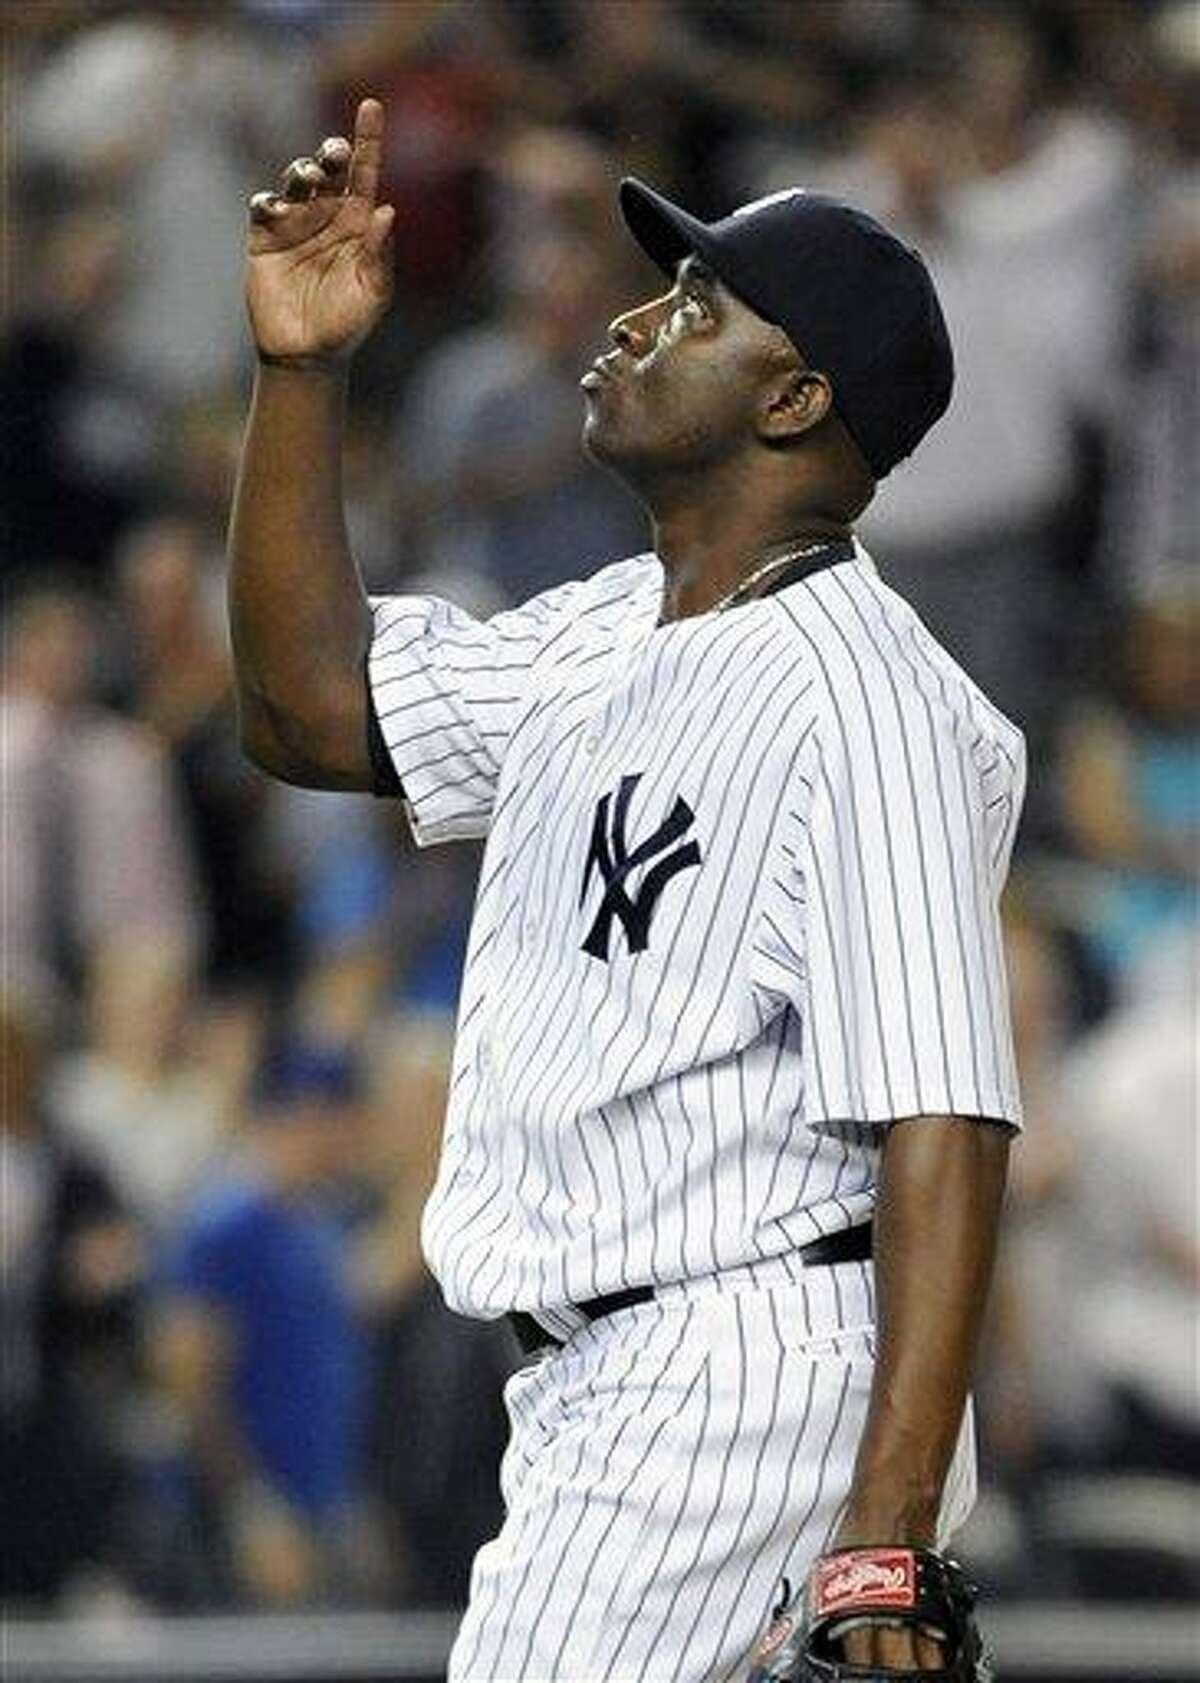 New York Yankees relief pitcher Rafael Soriano points skyward after the Yankees defeated the Toronto Blue Jays 2-1 in a baseball game on Tuesday, Aug., 28, 2012, at Yankee Stadium in New York. (AP Photo/Kathy Kmonicek)